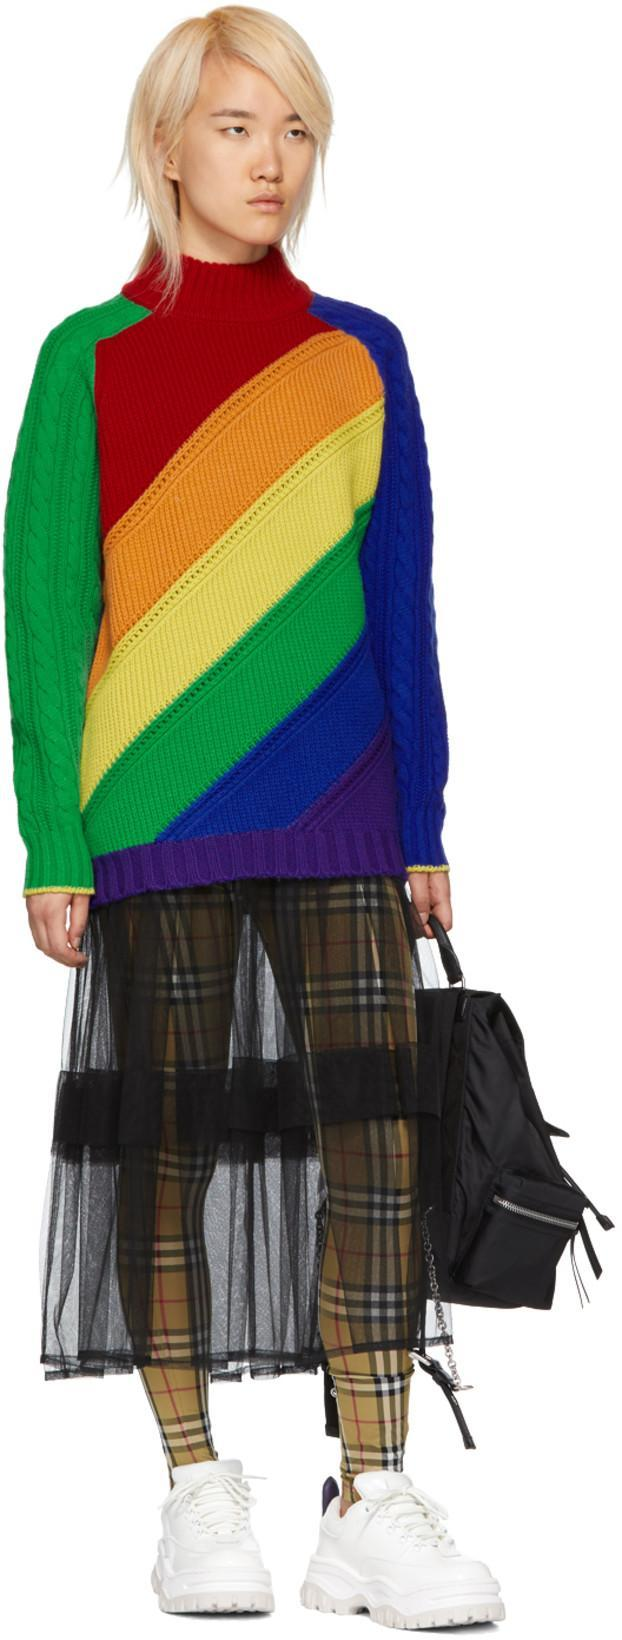 031c39fa119 Burberry Color-Block Wool And Cashmere-Blend Sweater In Blue